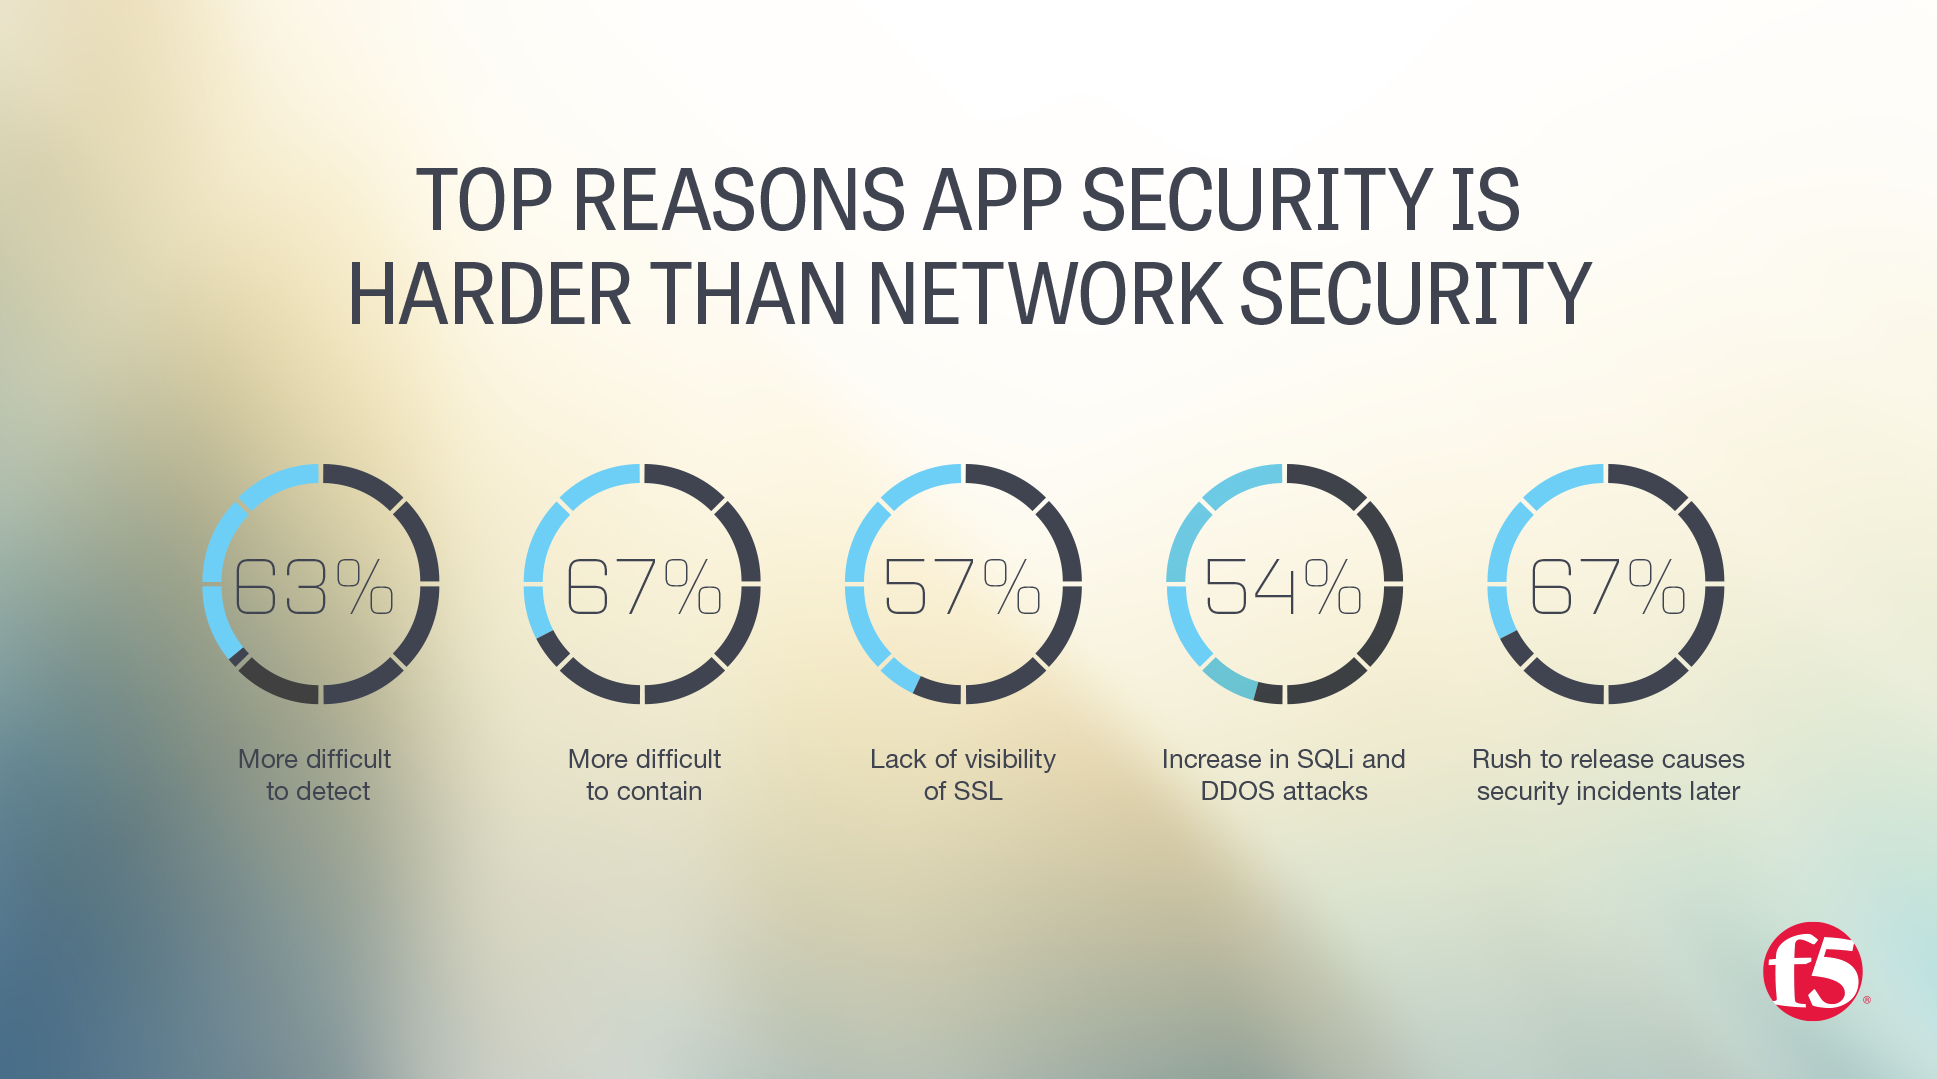 As it turns out, many security professionals share my concerns. More than half of all survey respondents believe that cloud-based applications increase risk, while